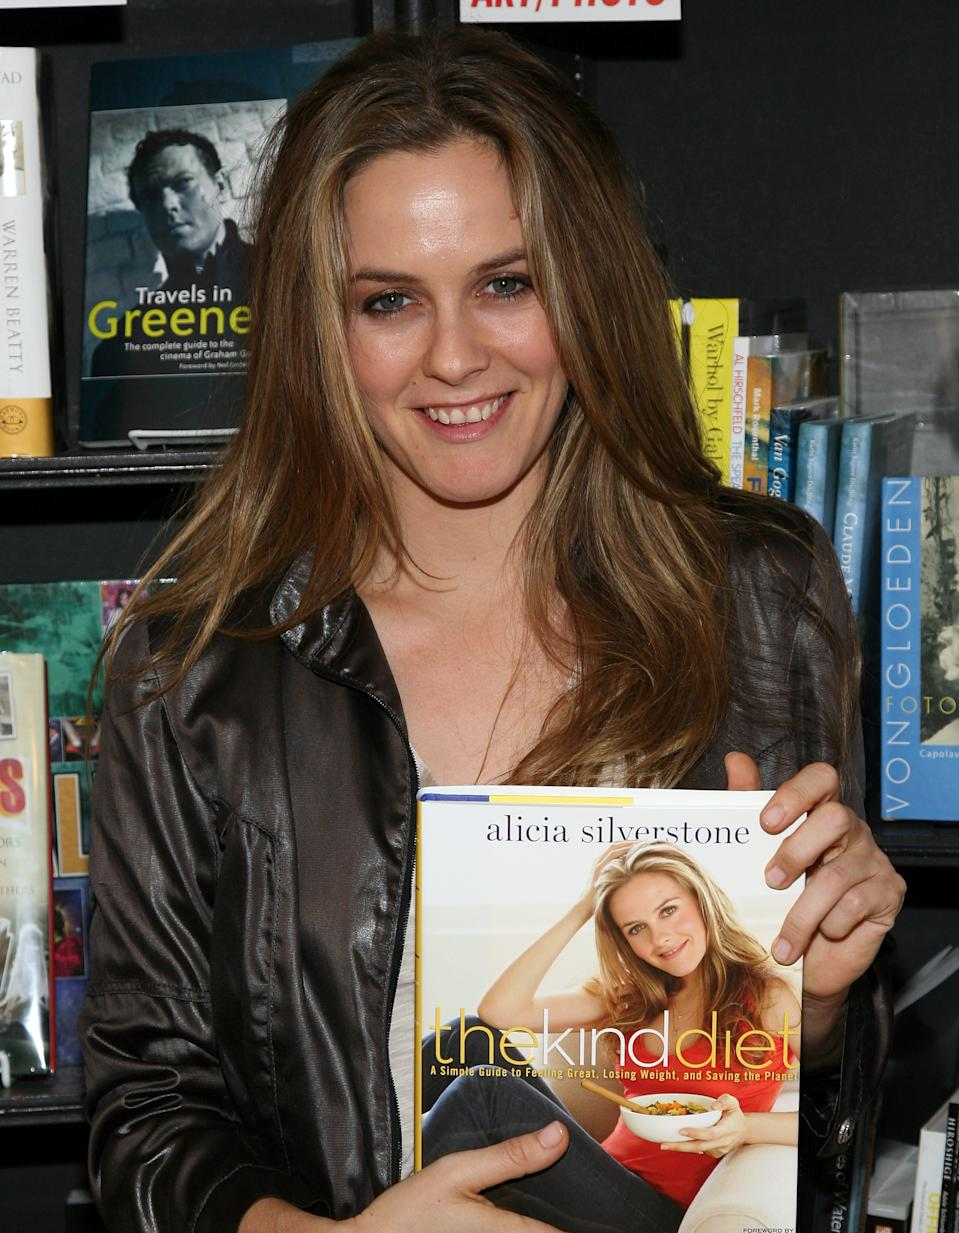 WEST HOLLYWOOD, CA - OCTOBER 15: Actress Alicia Silverstone attends the book signing of her new book 'The Kind Diet: A Simple Guide to Feeling Great, Losing Weight, and Saving the Planet' at Book Soup on October 15, 2009 in West Hollywood, California. (Photo by Angela Weiss/Getty Images)